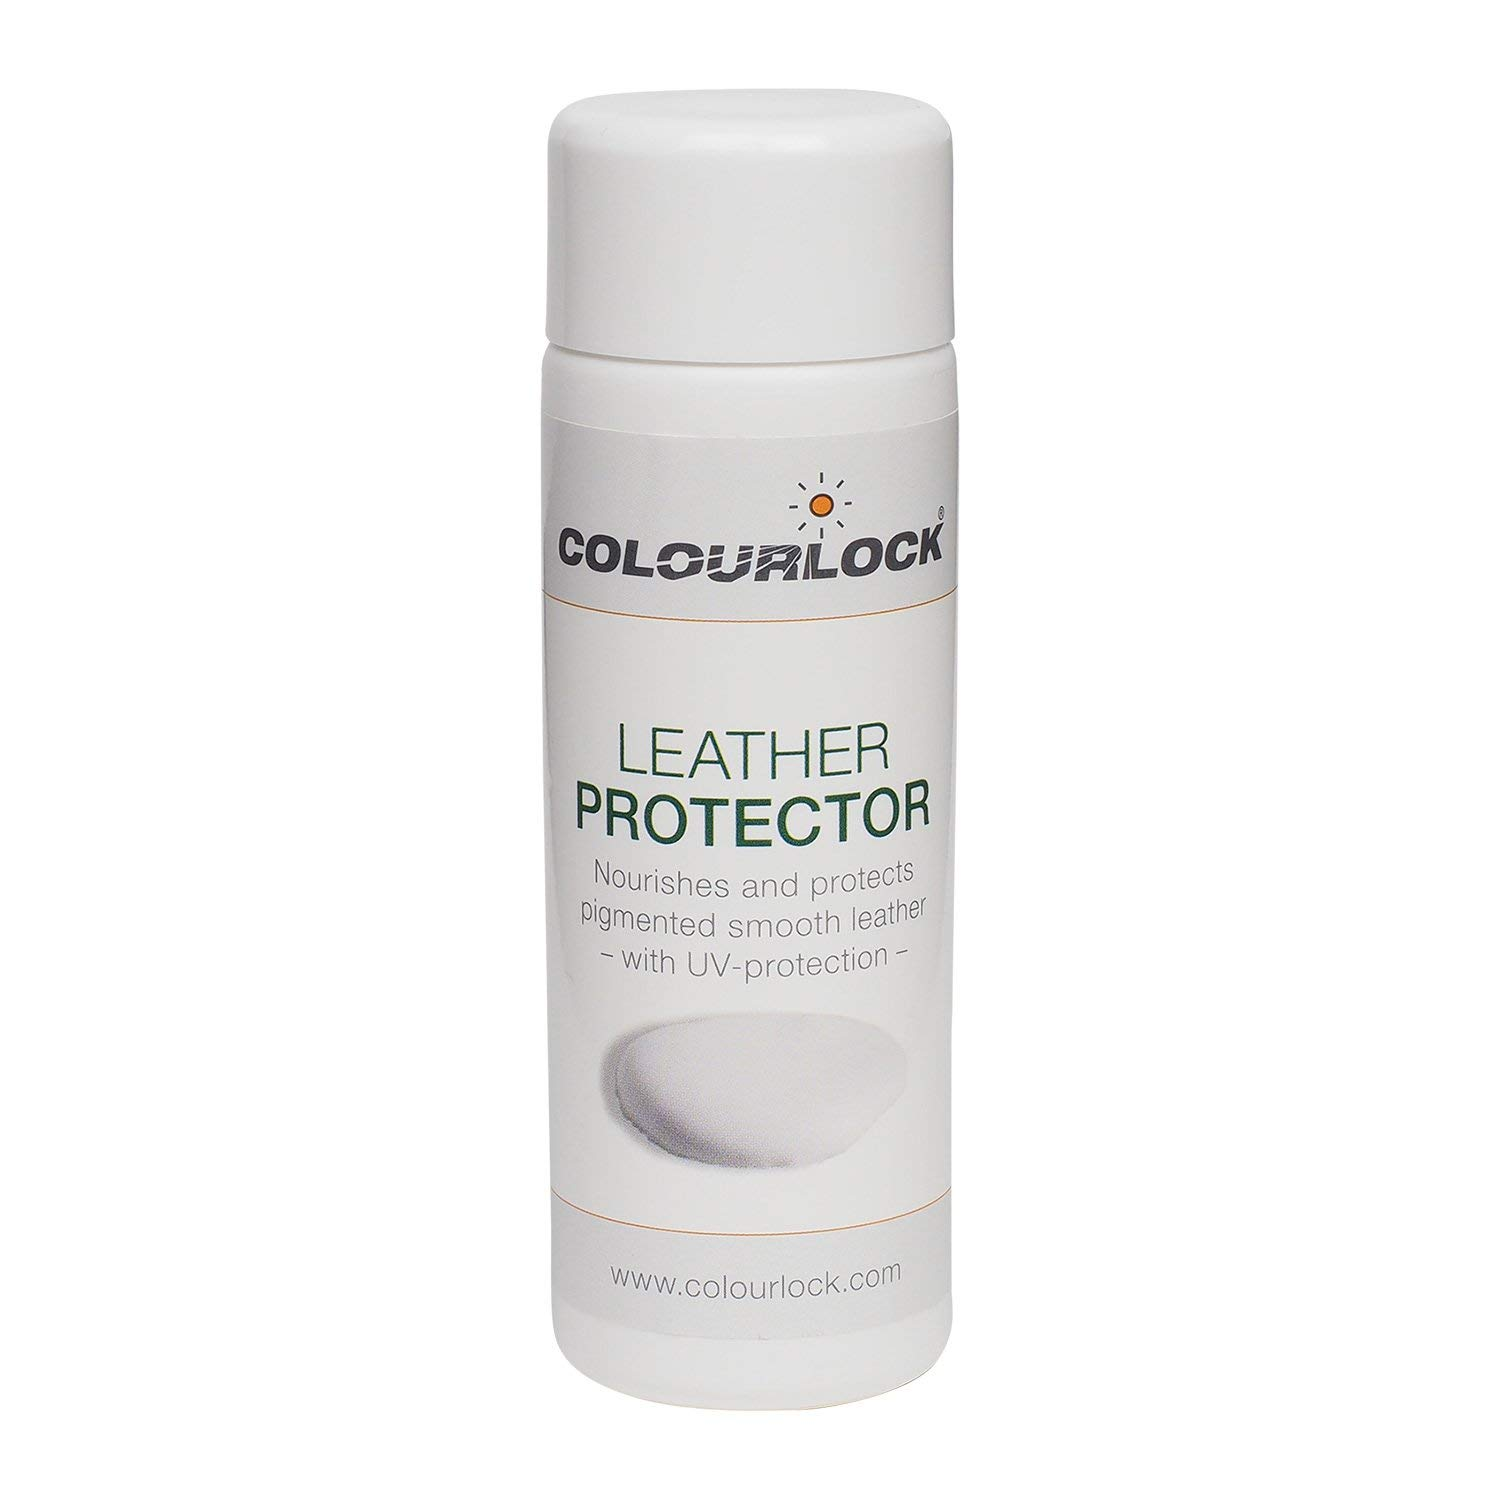 Colourlock Leather Repair Kit with Leather Dye and Mild Cleaner for Repairing Scuffs, Scratches and Faded Leather Compatible with Volvo Atacama by Colourlock (Image #4)